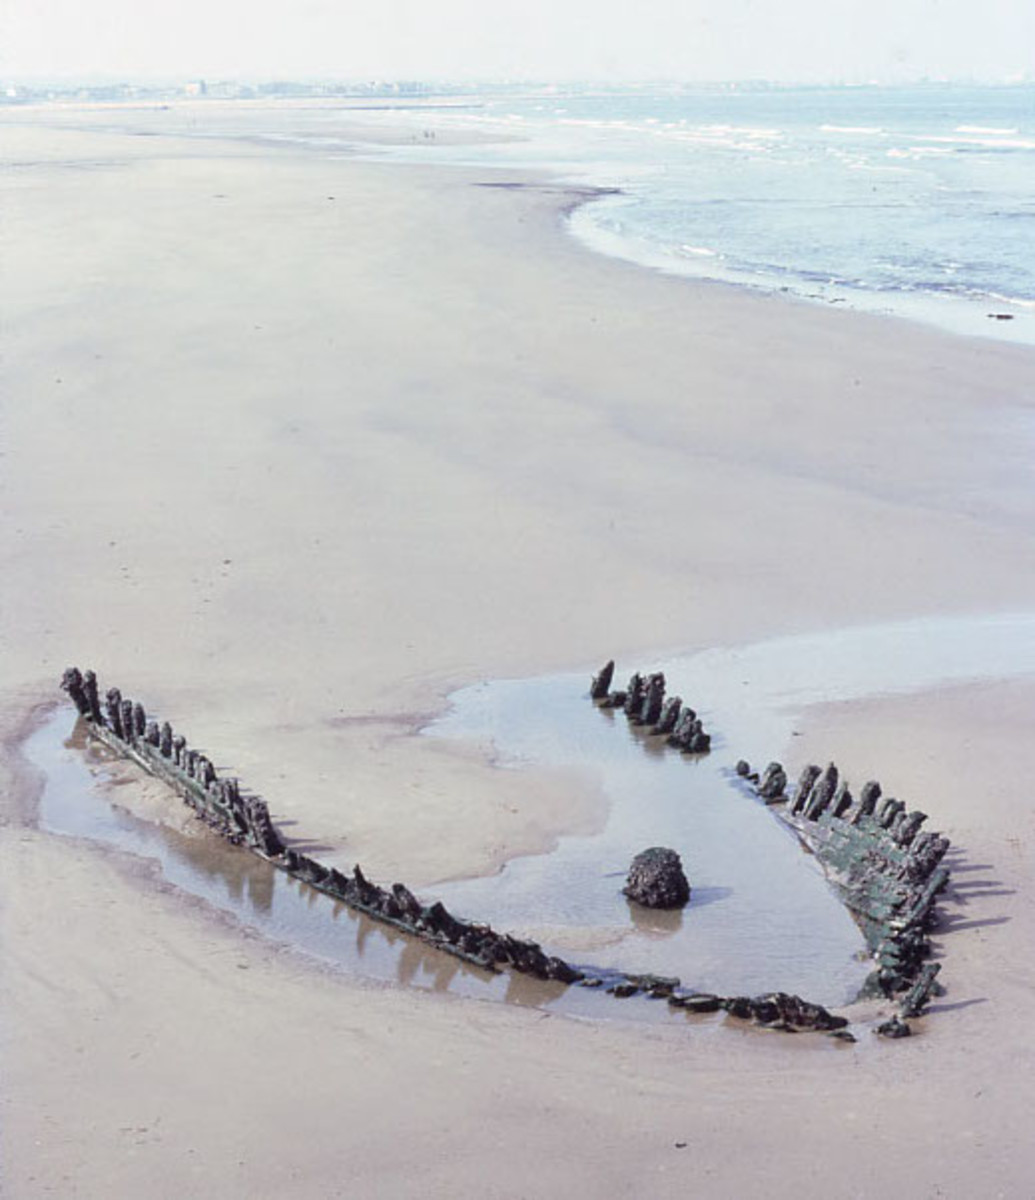 The wreck of the Danish schooner 'Doris' located 1983 near the South Gare, seen here at low tide. Shifting sands exposed the skeleton of the vessel.